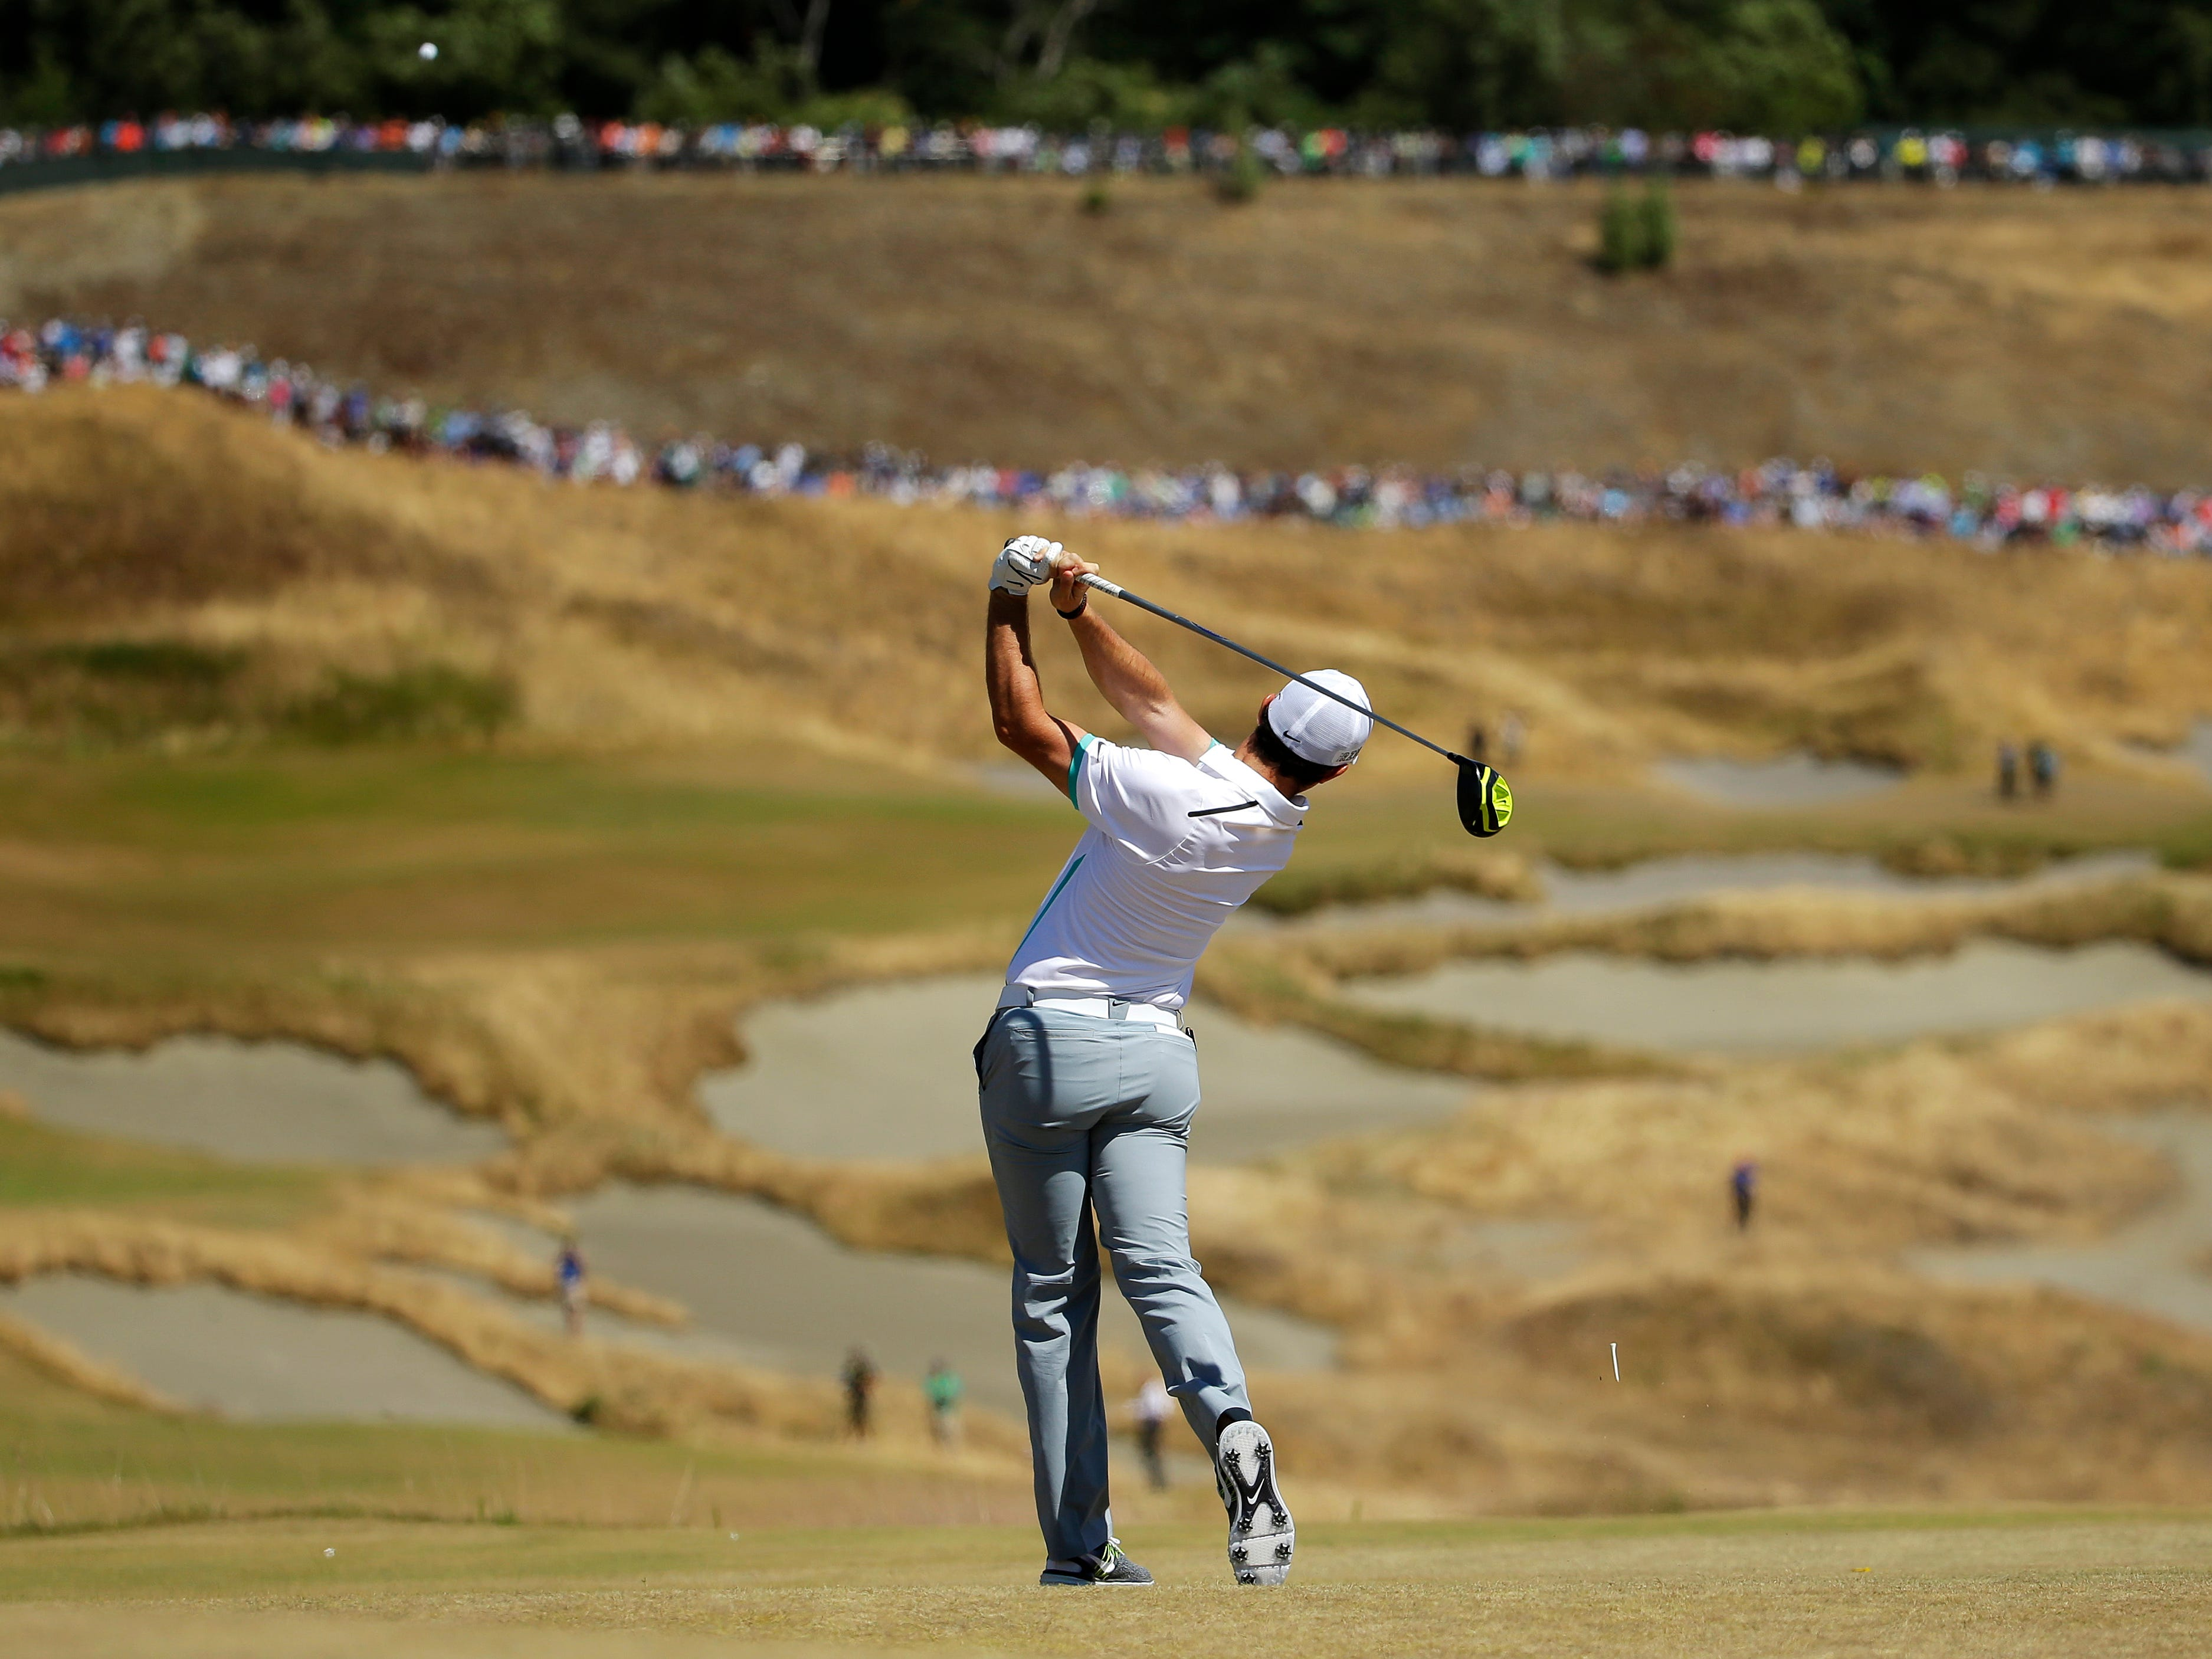 Rory McIlroy, of Northern Ireland, watches his tee shot on the fourth hole during the second round of the U.S. Open golf tournament at Chambers Bay on Friday, June 19, 2015 in University Place, Wash. (AP Photo/Ted S. Warren)